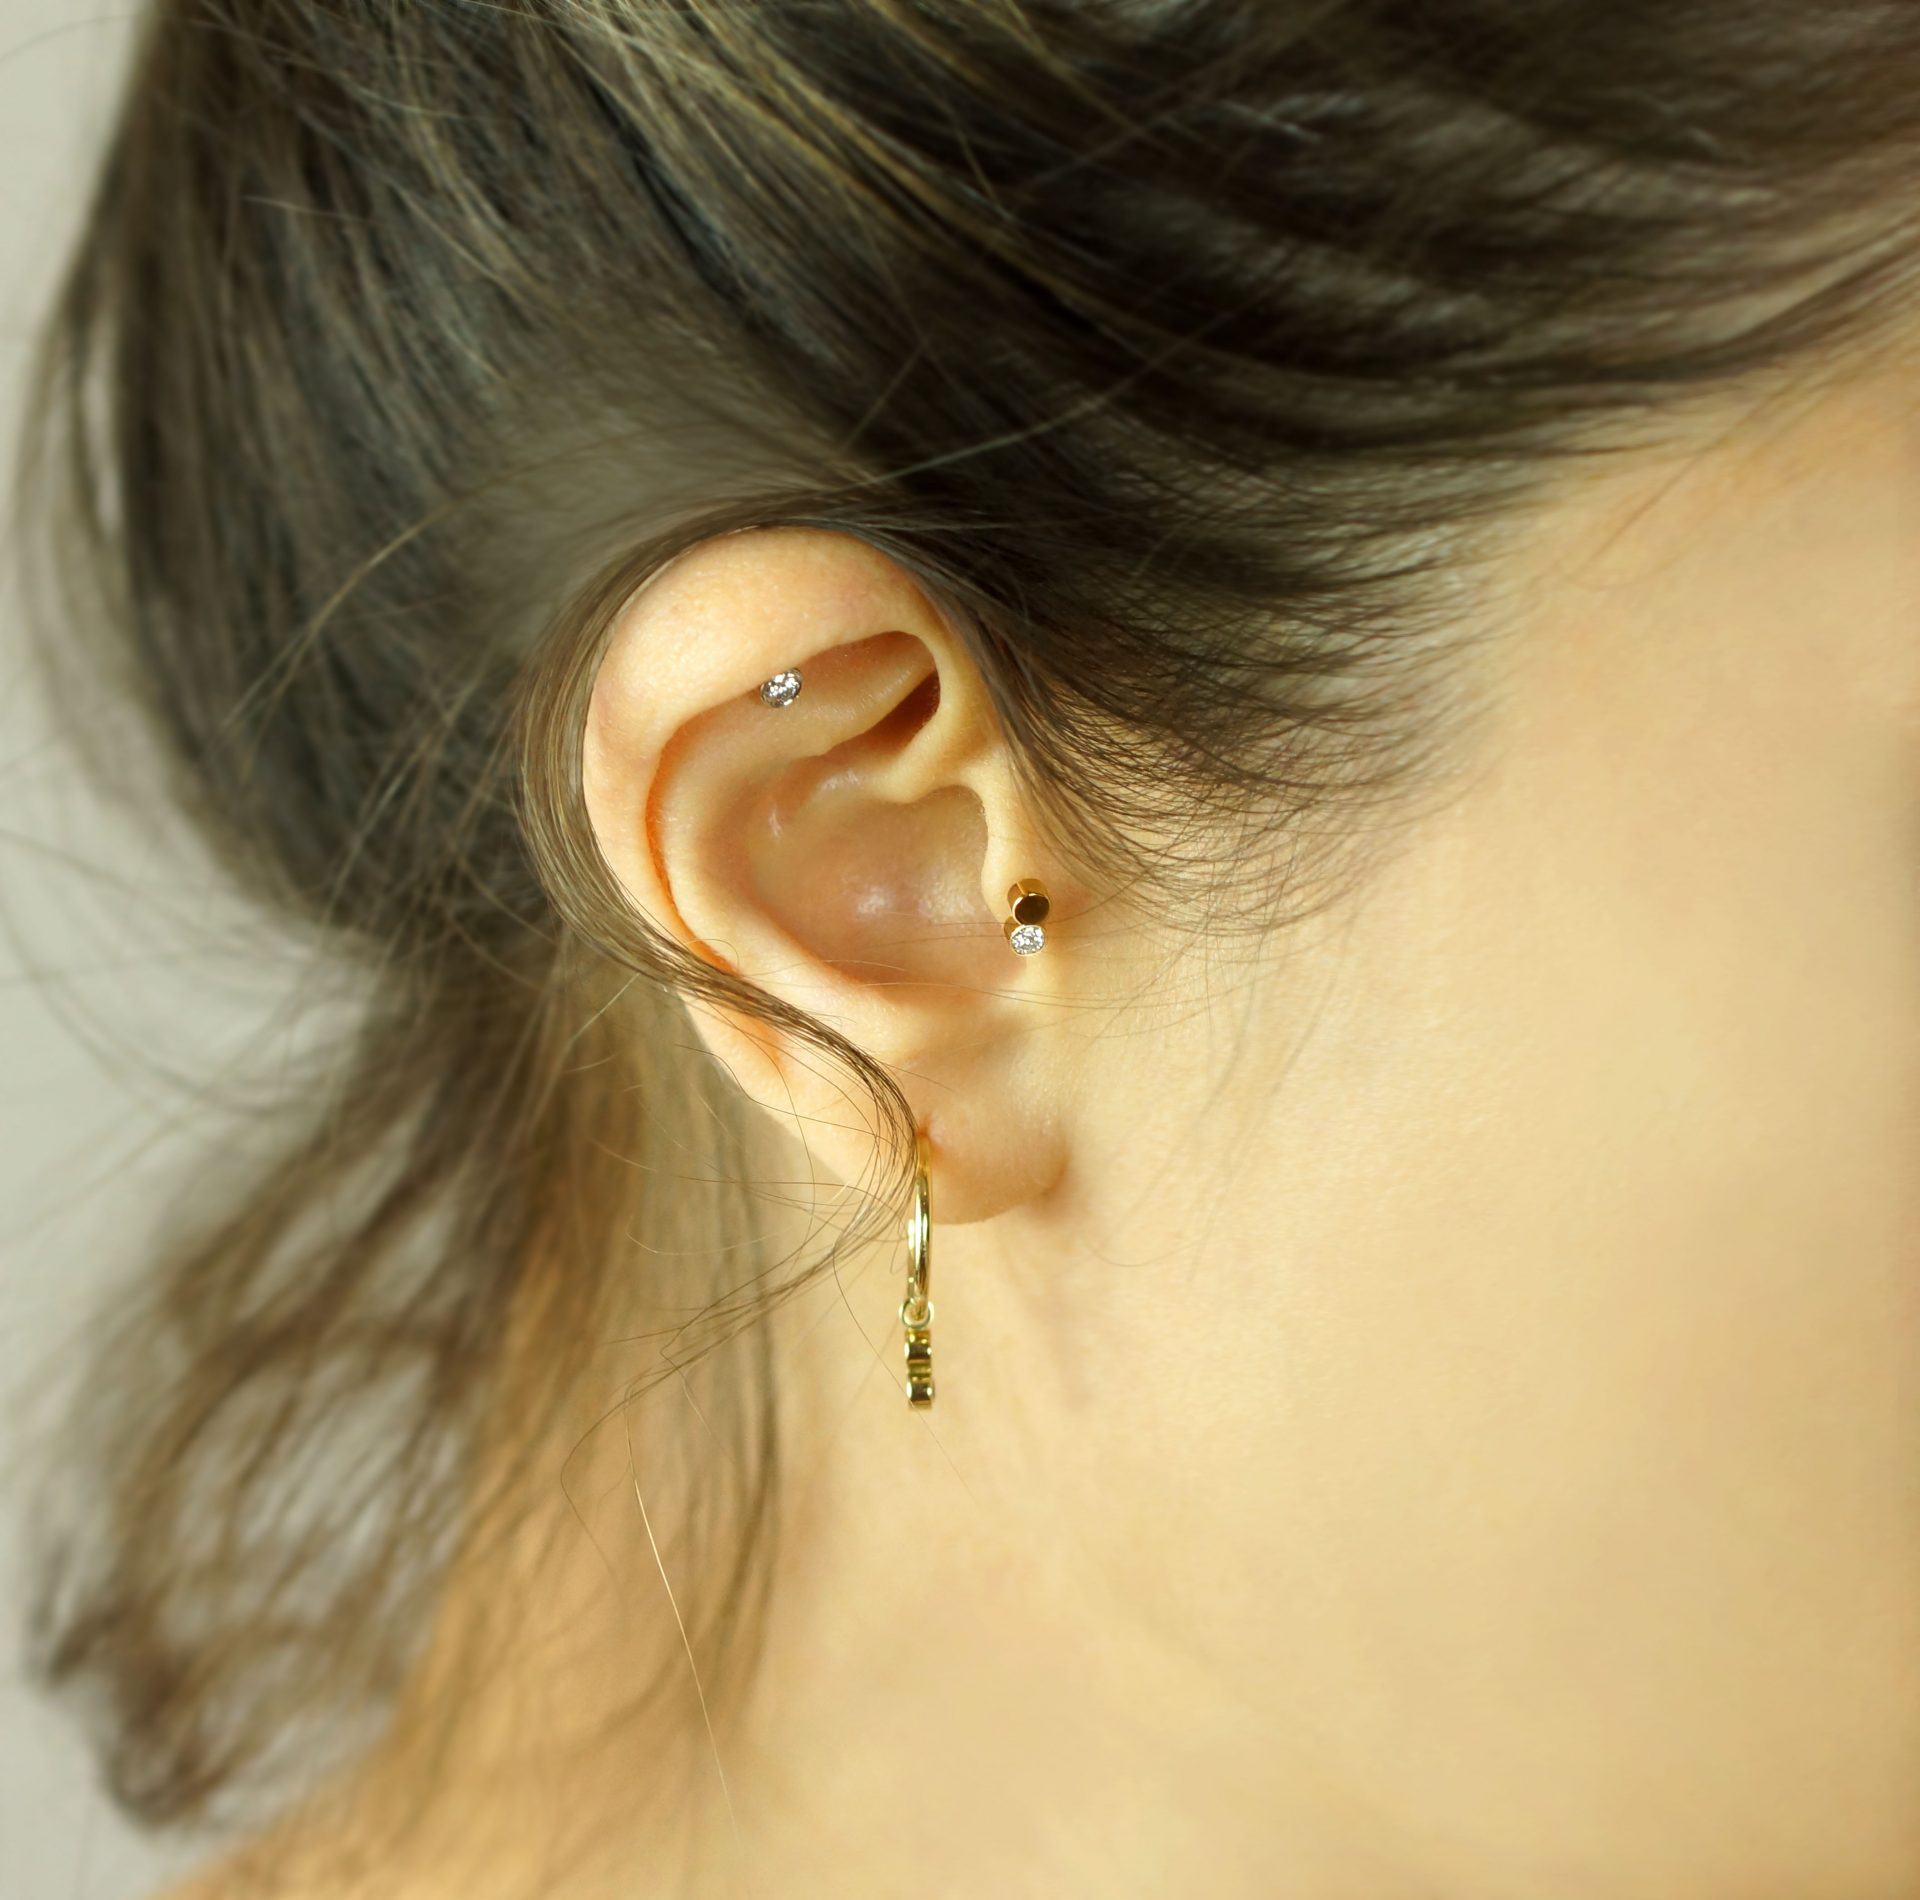 helix-tragus-earrings-are-the-latest-jewellery-trend-Luxury-Cartilage-Earrings-Lena-Cohen